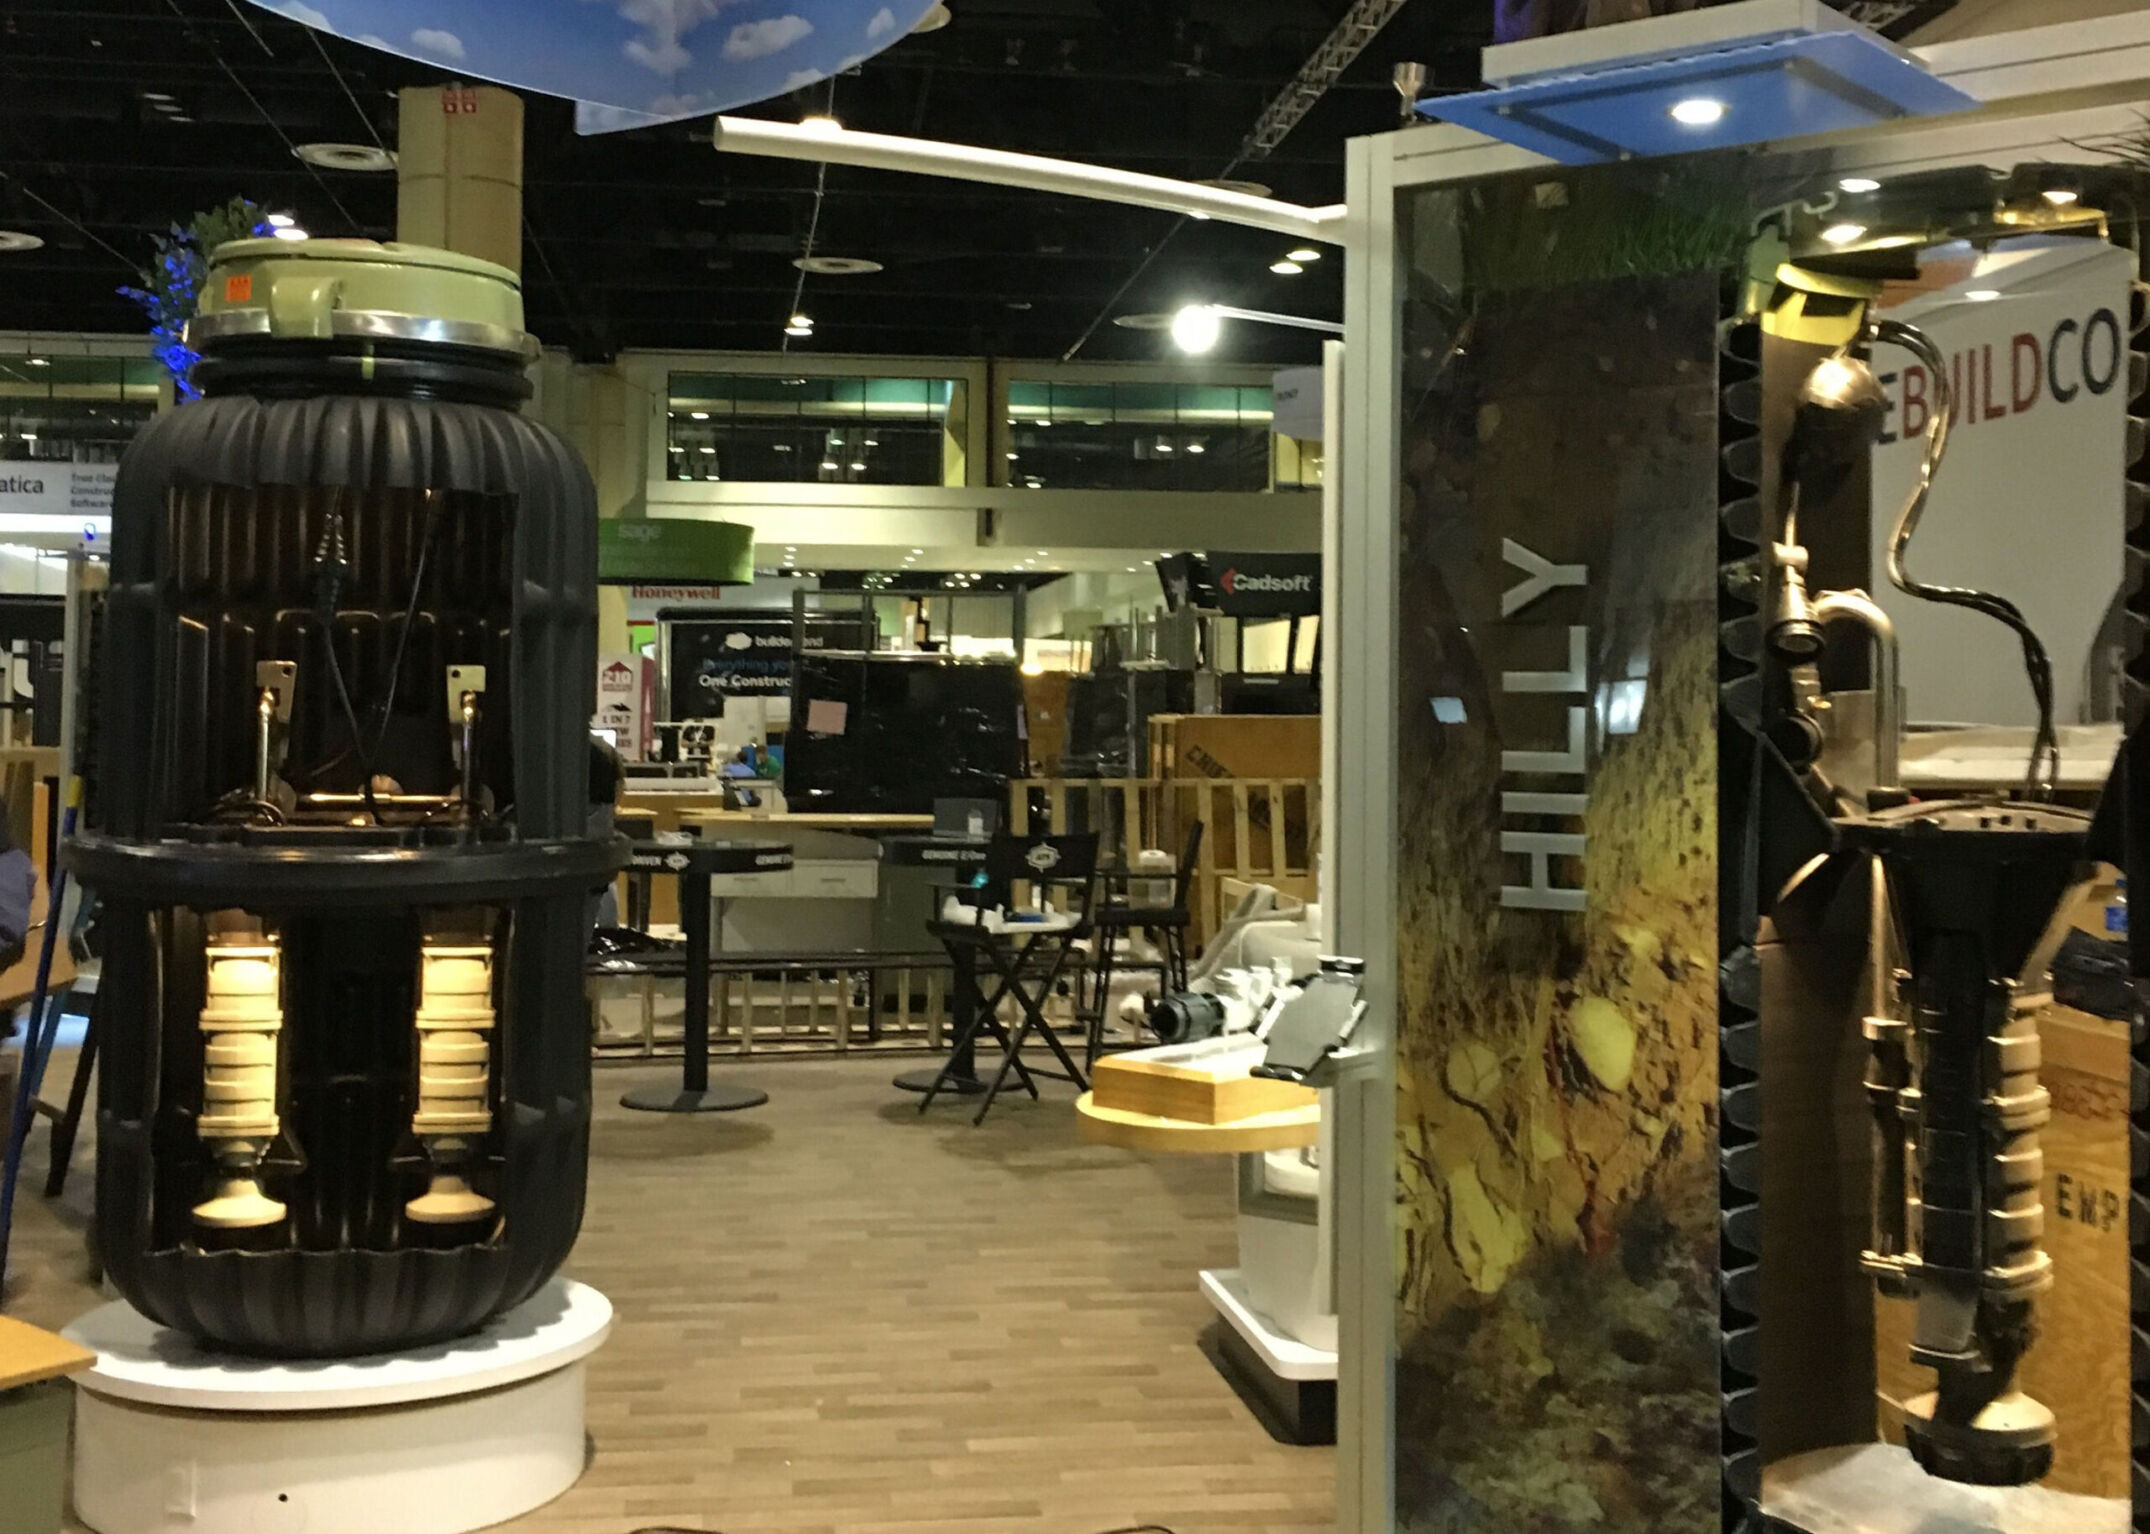 Trade show booth with custom built aluminum display with puck lighting and graphics